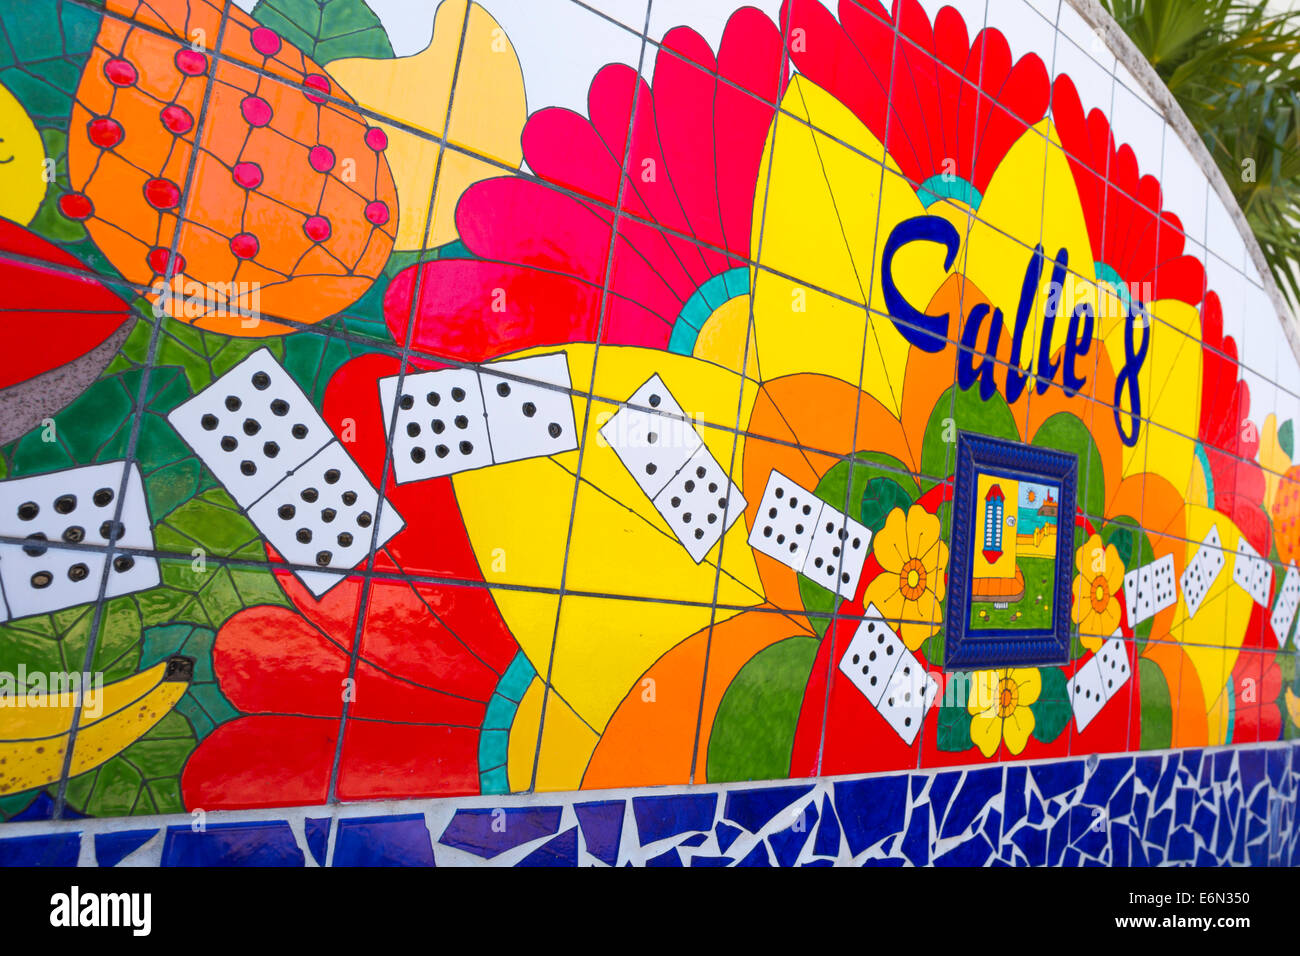 CALLE 8 WAVE WALL MOSAIC DOMINO PARK EIGHT STREET LITTLE HAVANA ...